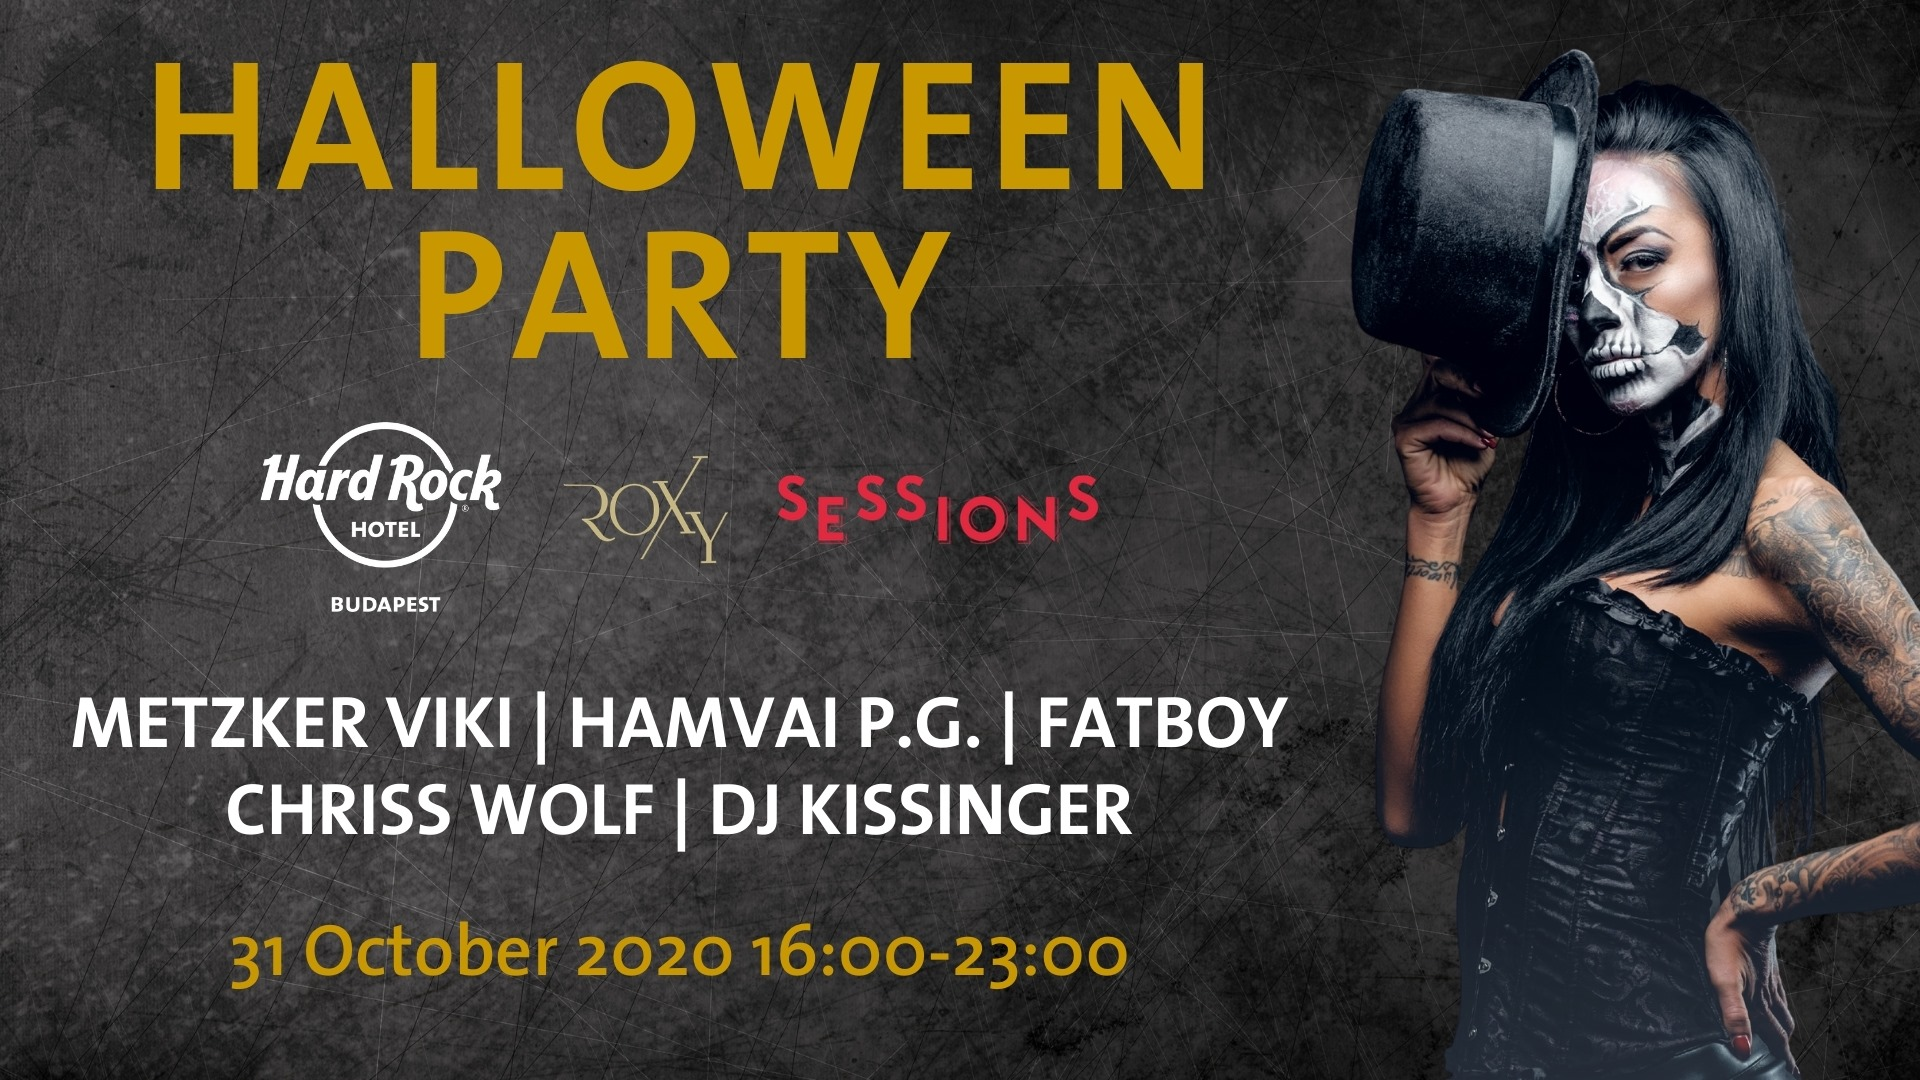 Halloween Party @ Hard Rock Hotel Budapest, 31 October